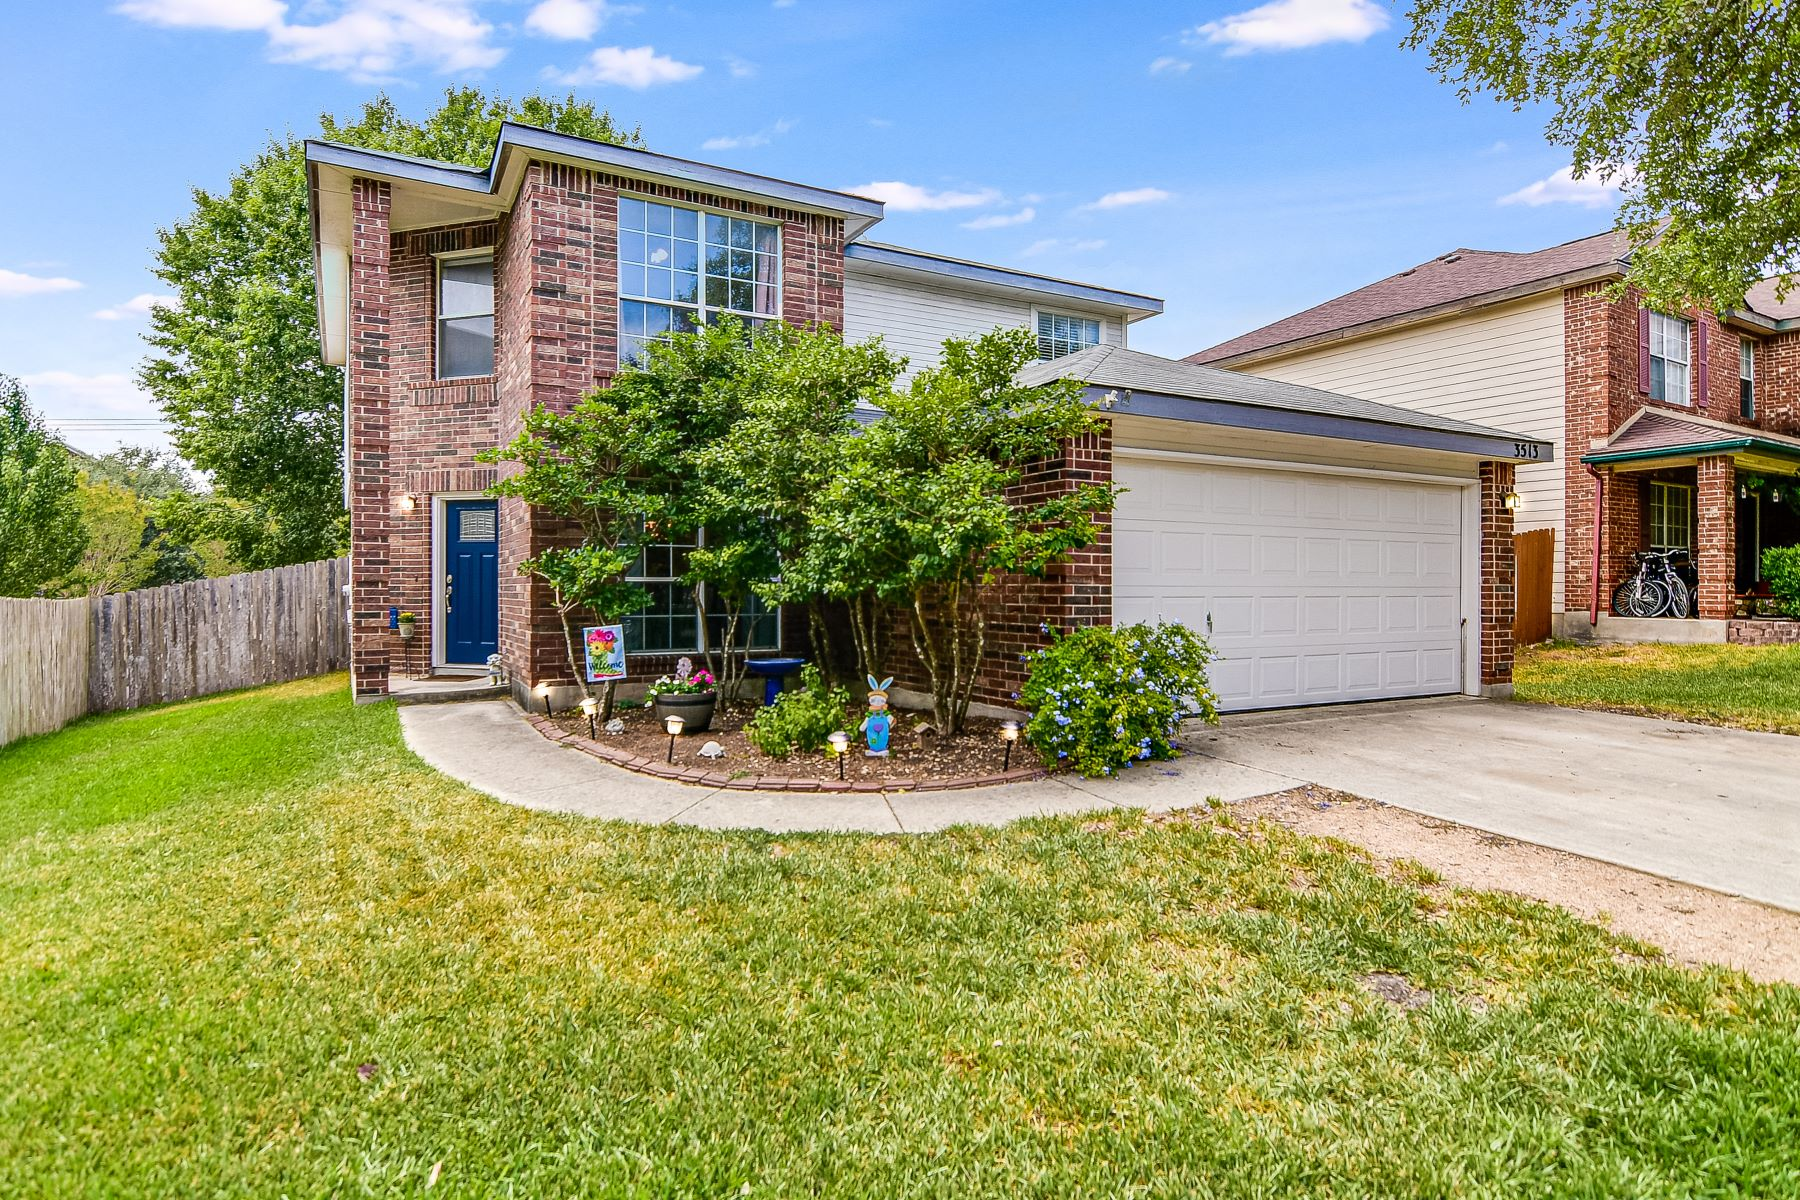 Single Family Homes for Sale at 3513 Peachtree Lane, Schertz, TX 78154 3513 Peachtree Lane Schertz, Texas 78154 United States